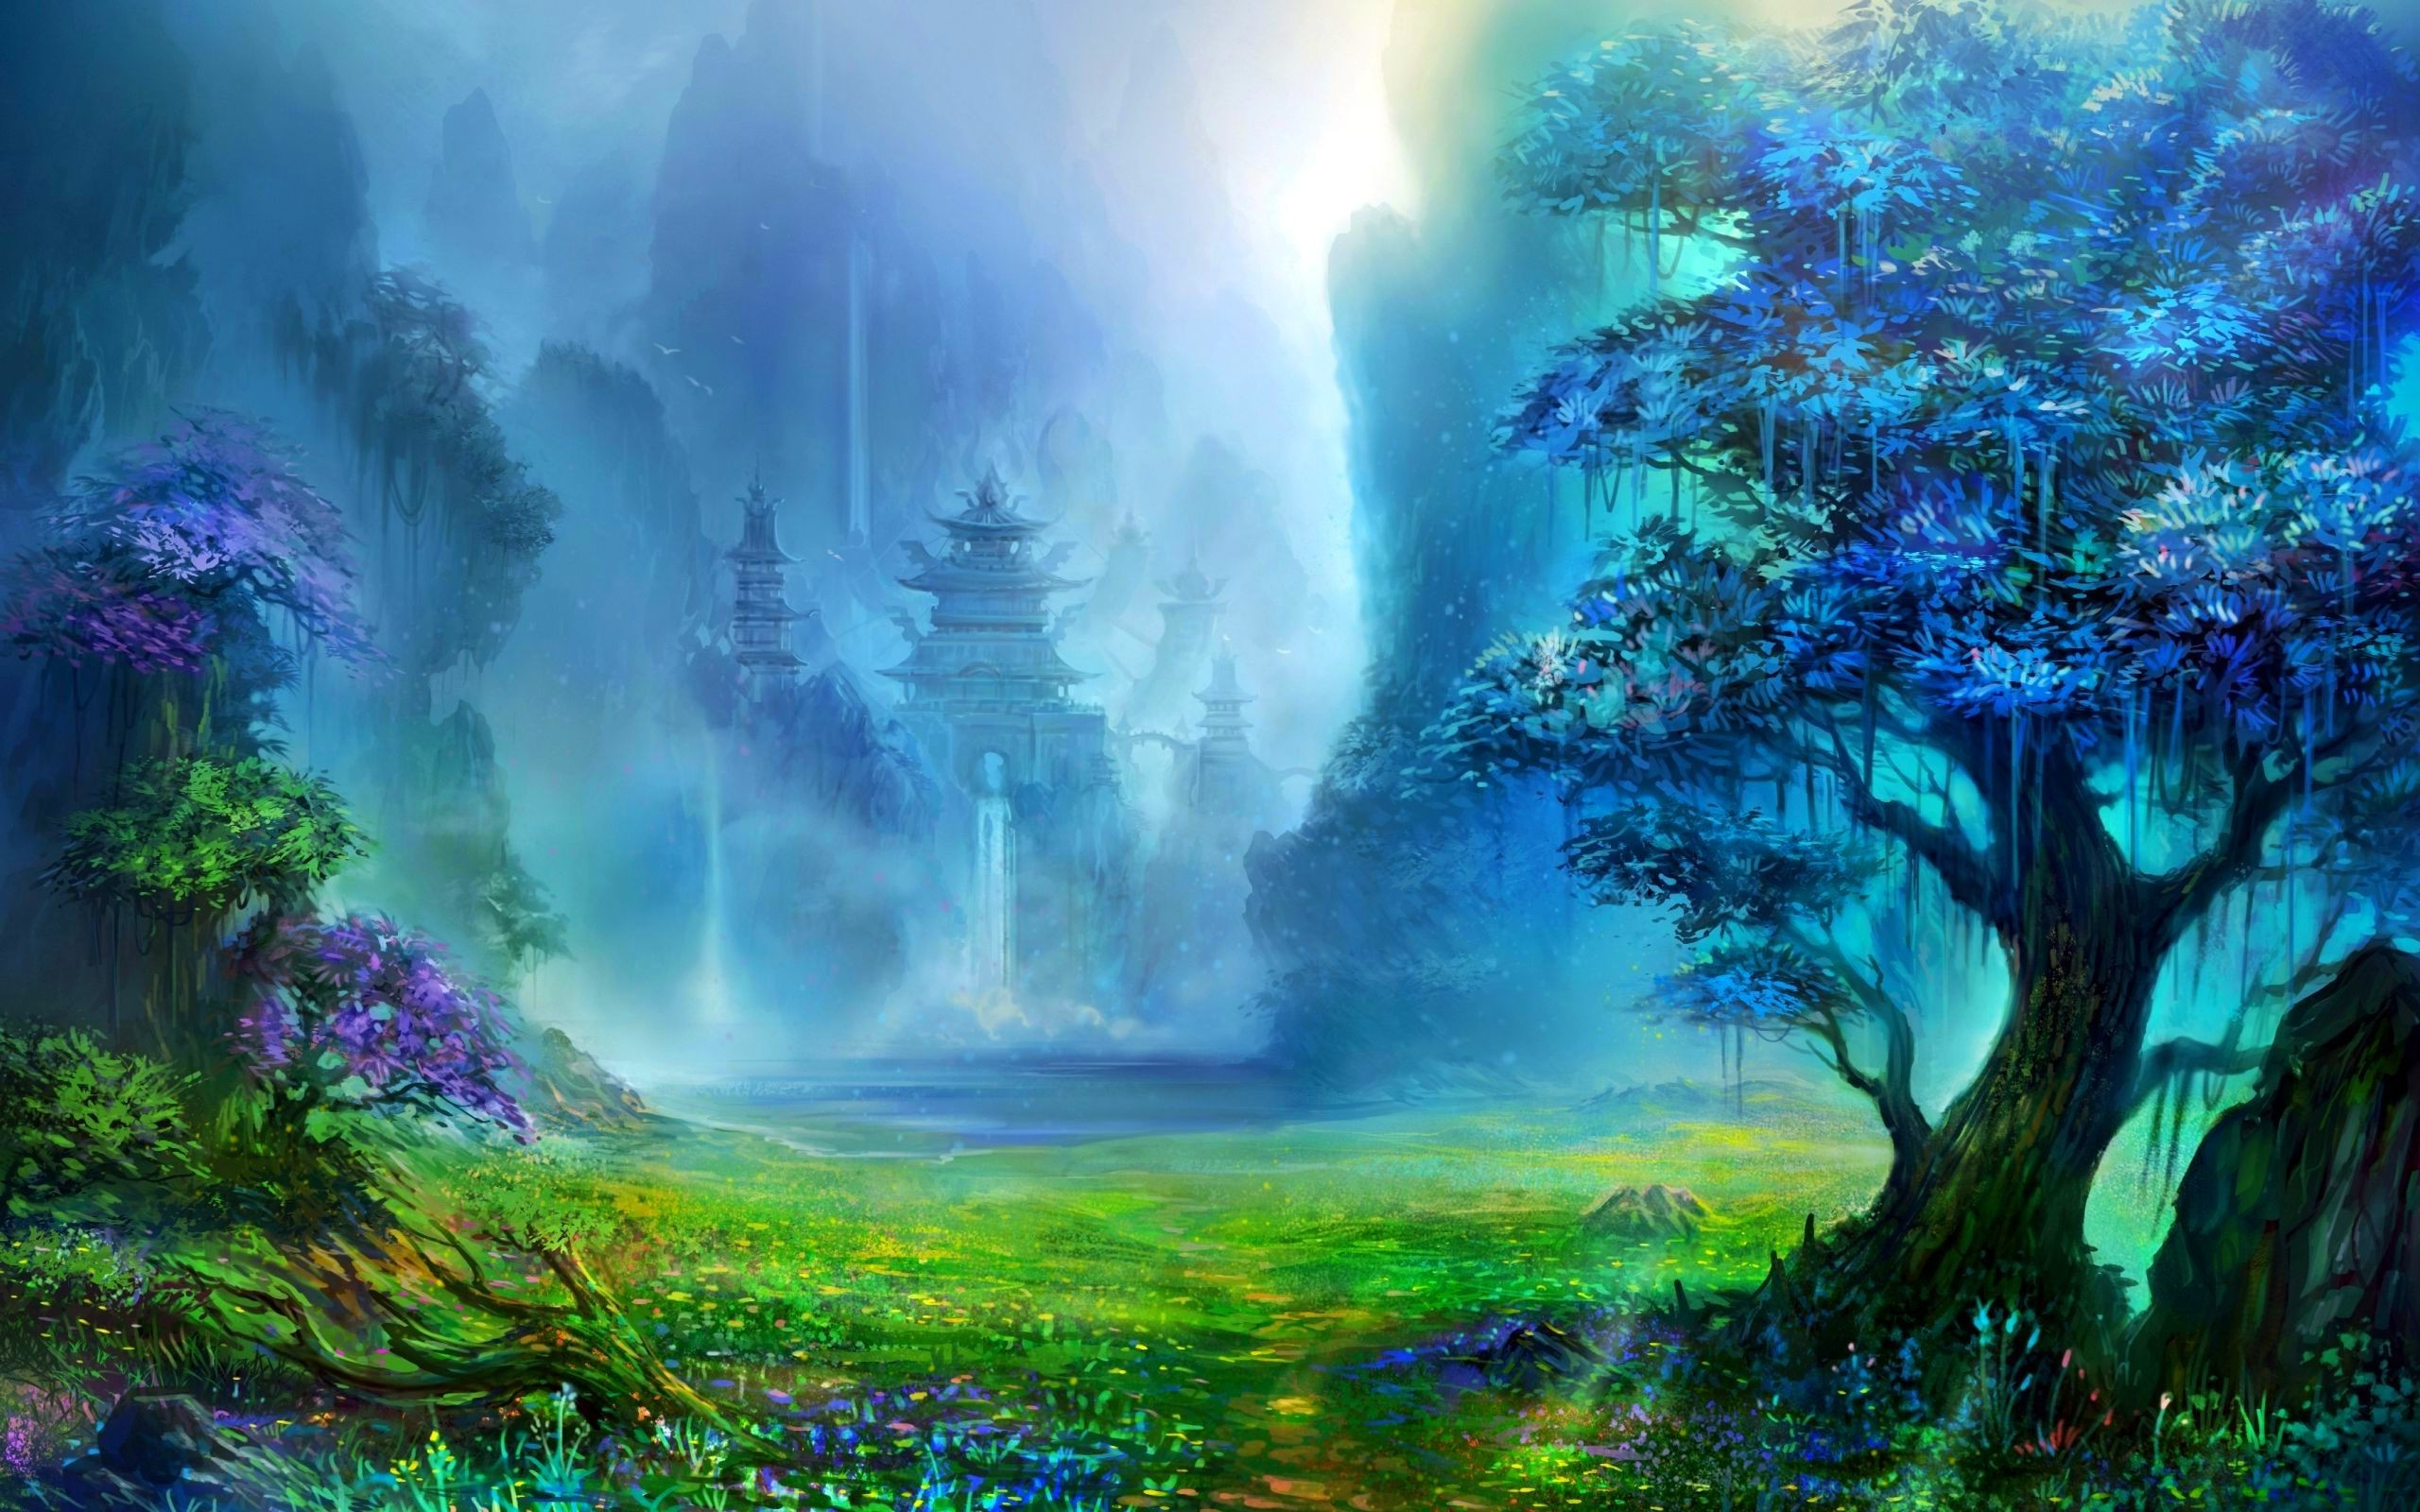 fantasy landscape nature digital wallpapers asian waterfall water trees artwork desktop architecture mountain hd forest pagoda mobile background backgrounds windows